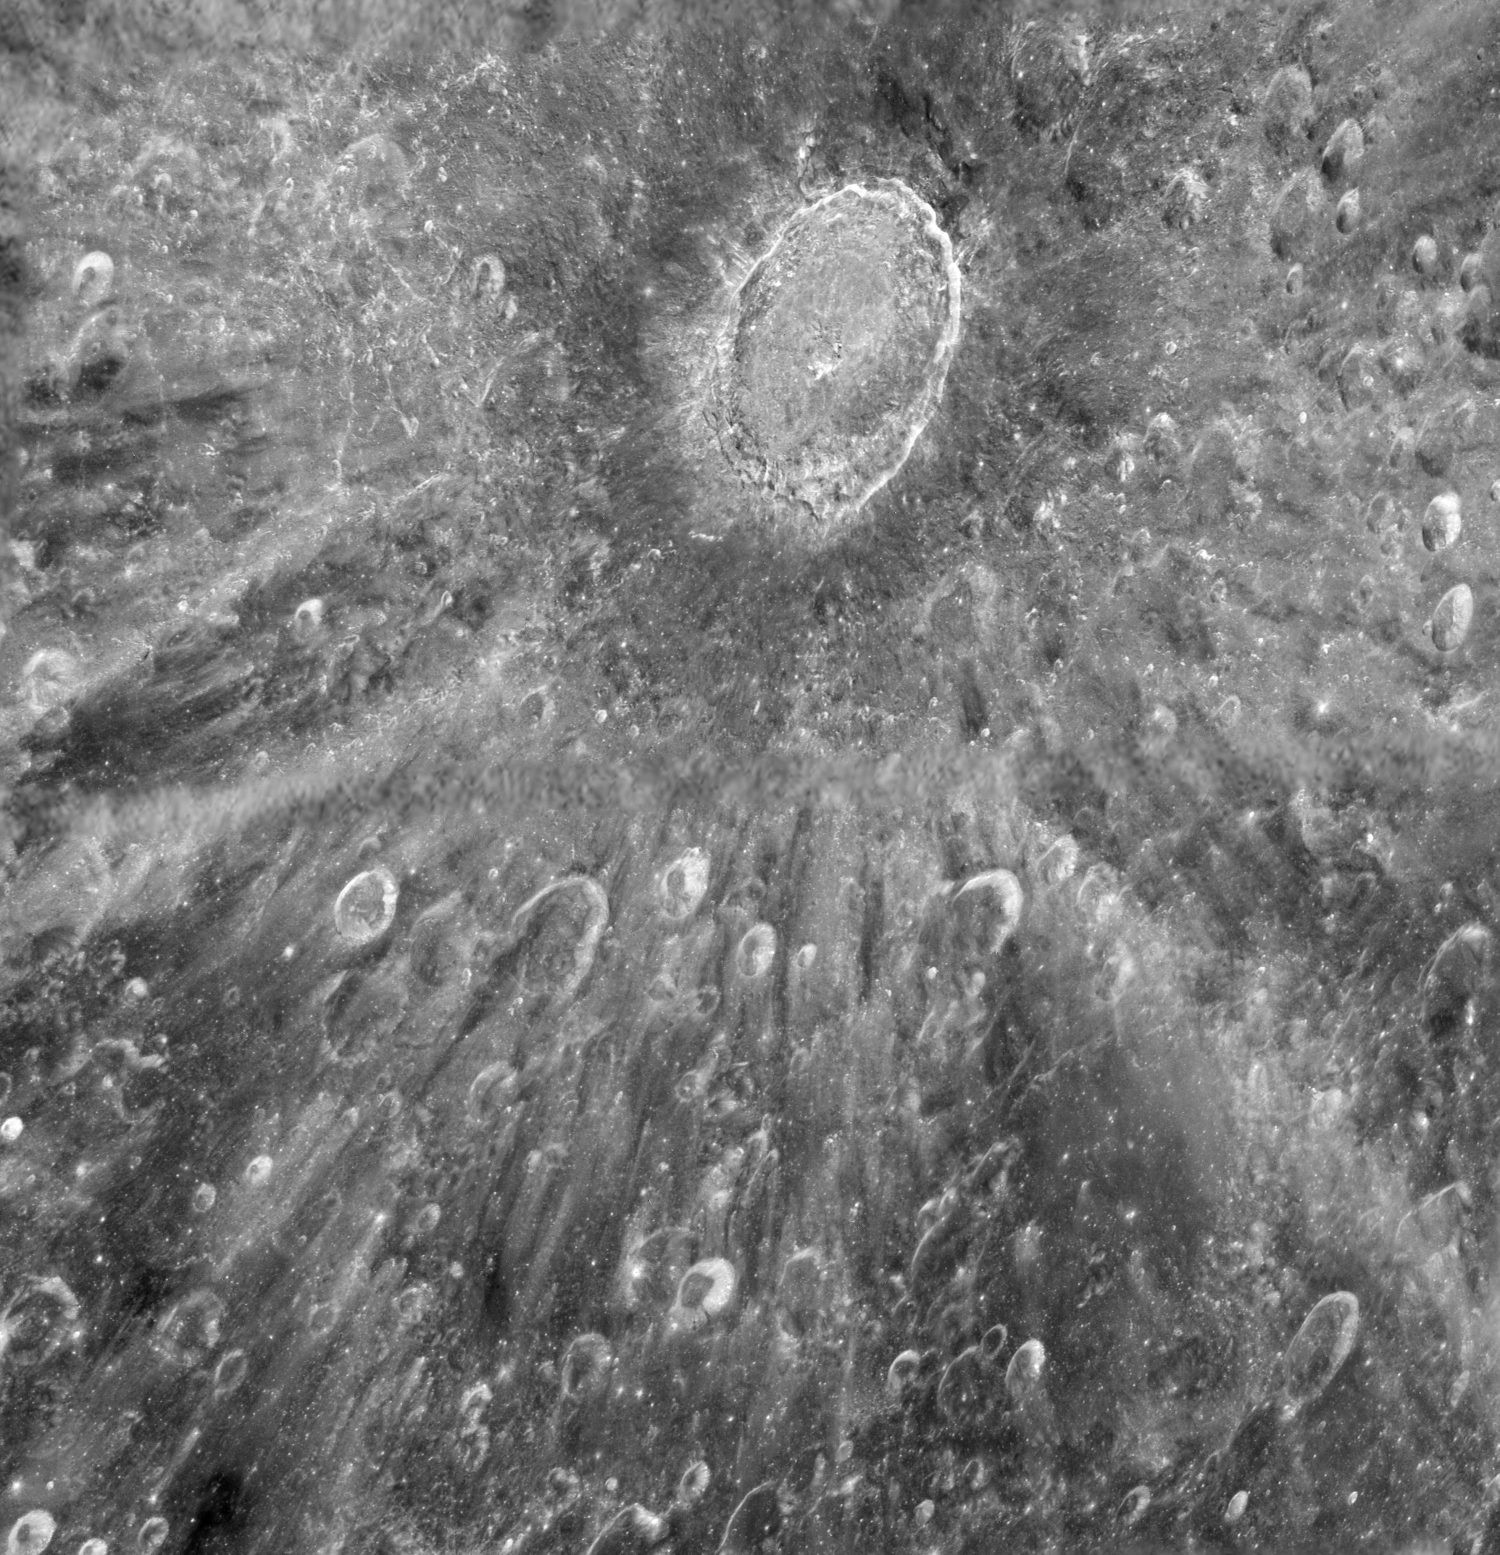 Crater Tycho, as seen by the Hubble Space Telescope. Credit: NASA, ESA, and D. Ehrenreich (Institut de Planétologie et d'Astrophysique de Grenoble (IPAG)/CNRS/Université Joseph Fourier)